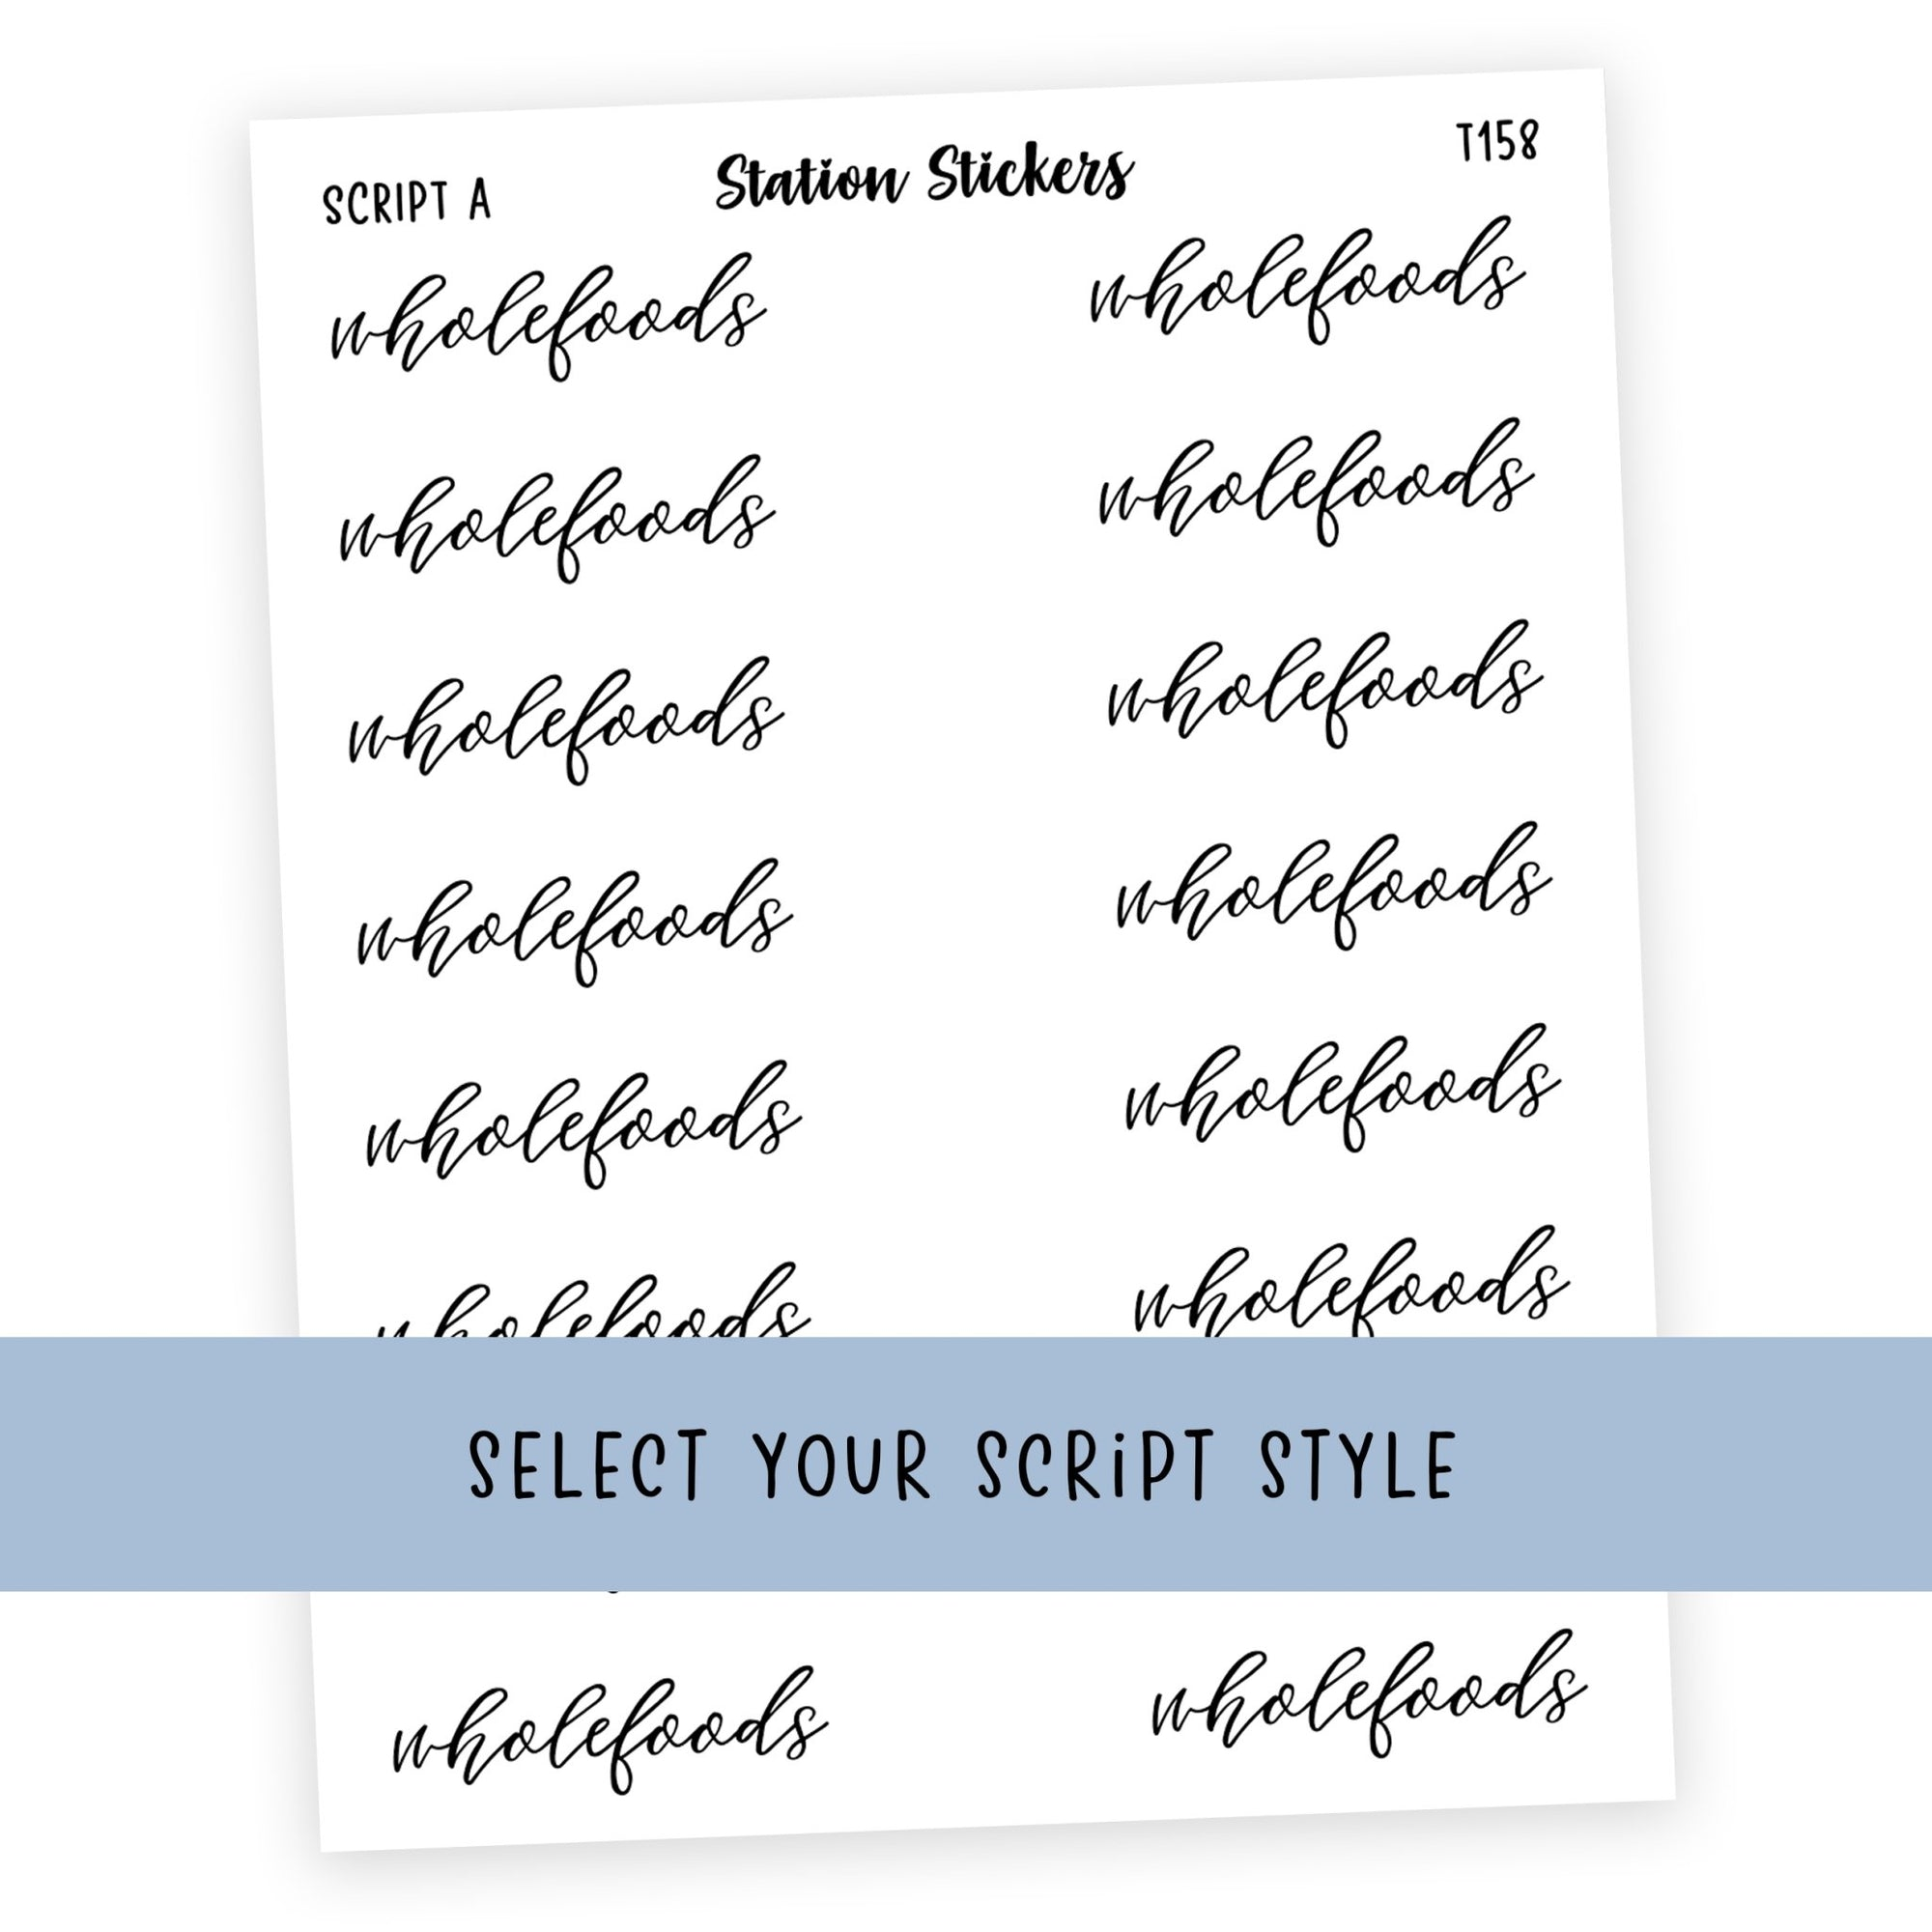 WHOLEFOODS • SCRIPTS - Station Stickers